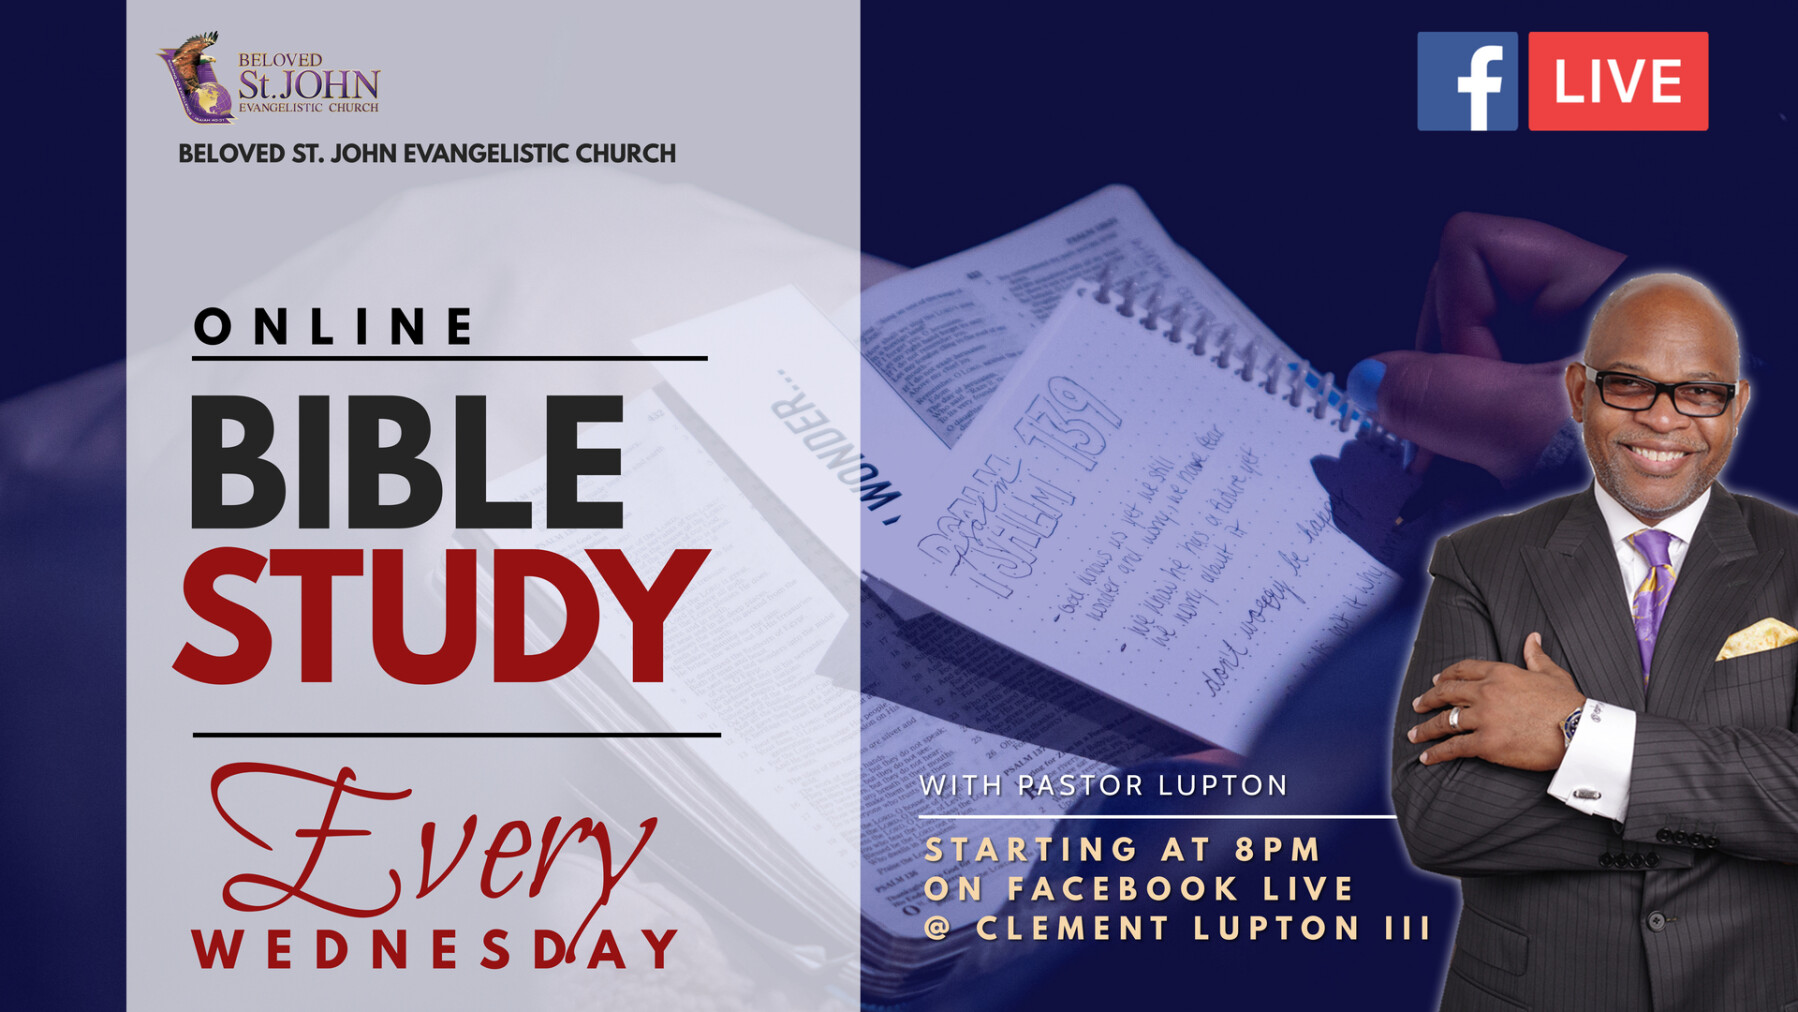 WEEKLY BIBLE STUDY ON FACEBOOK